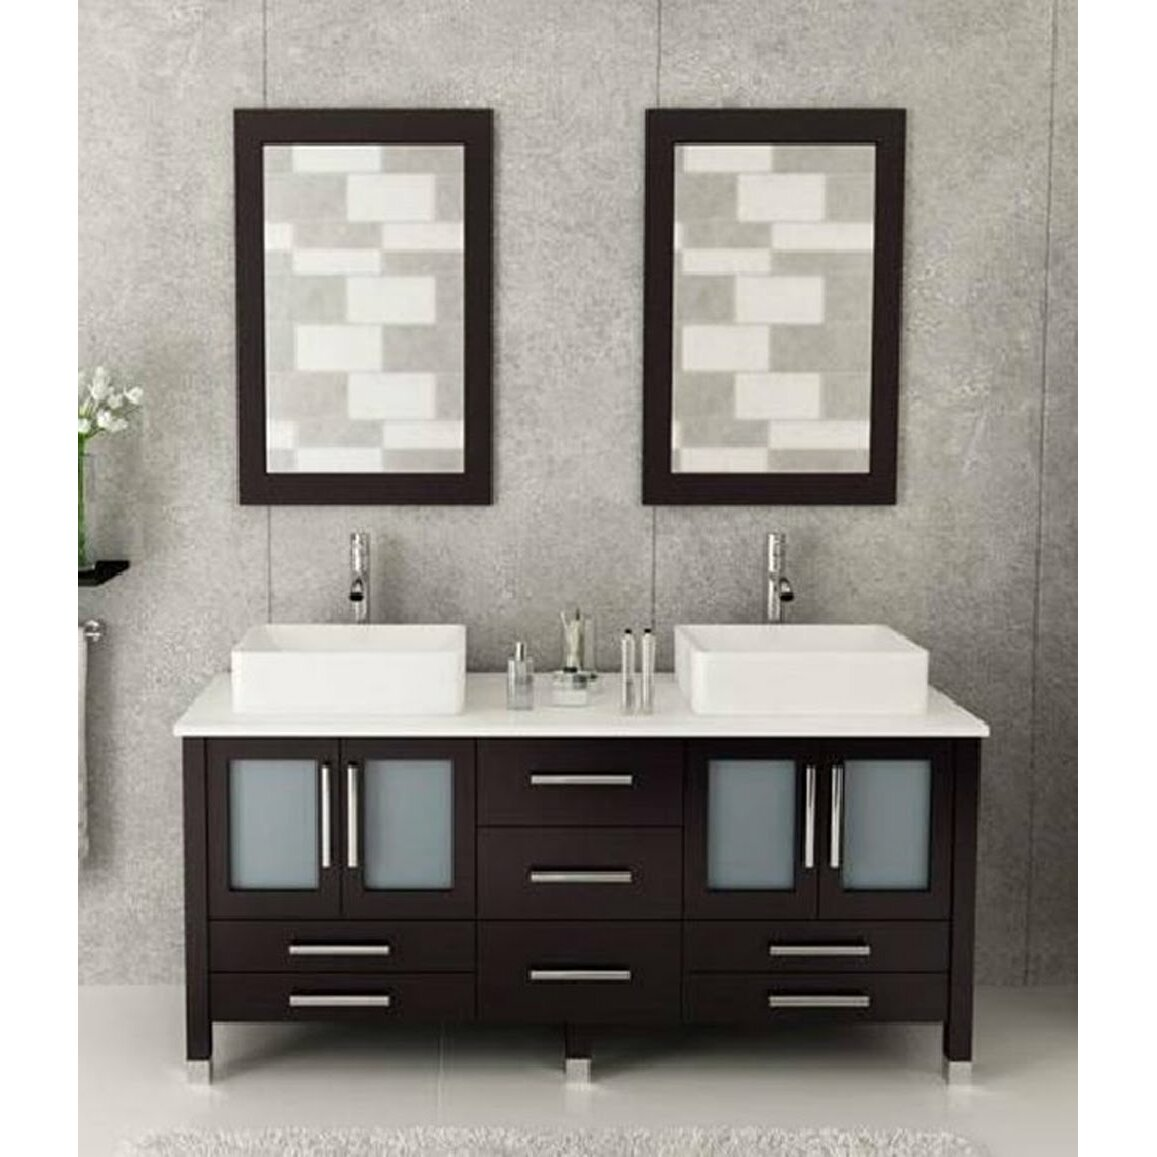 Kokols 72 double bathroom vanity set with mirror - Wayfair furniture bathroom vanities ...